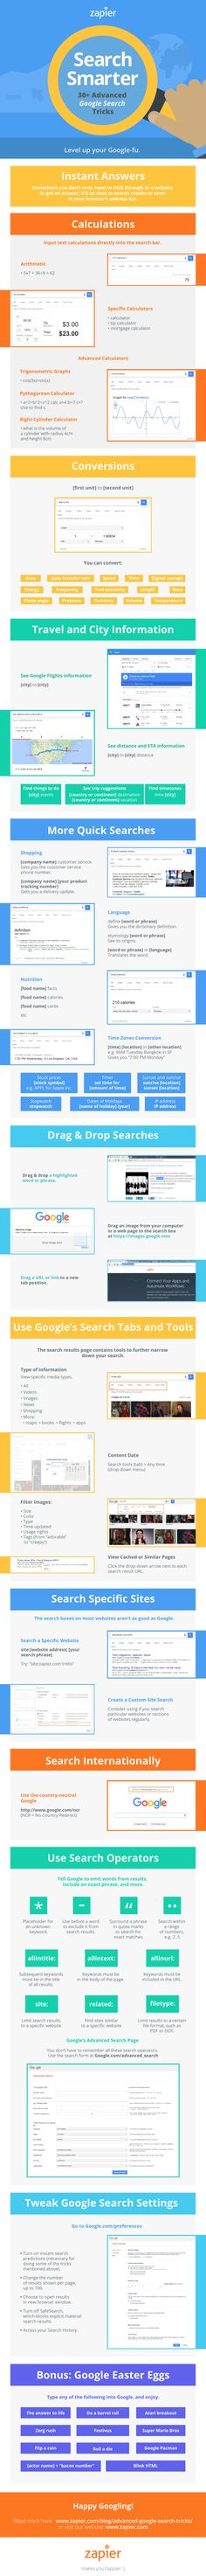 infographics-goog-search-tricks